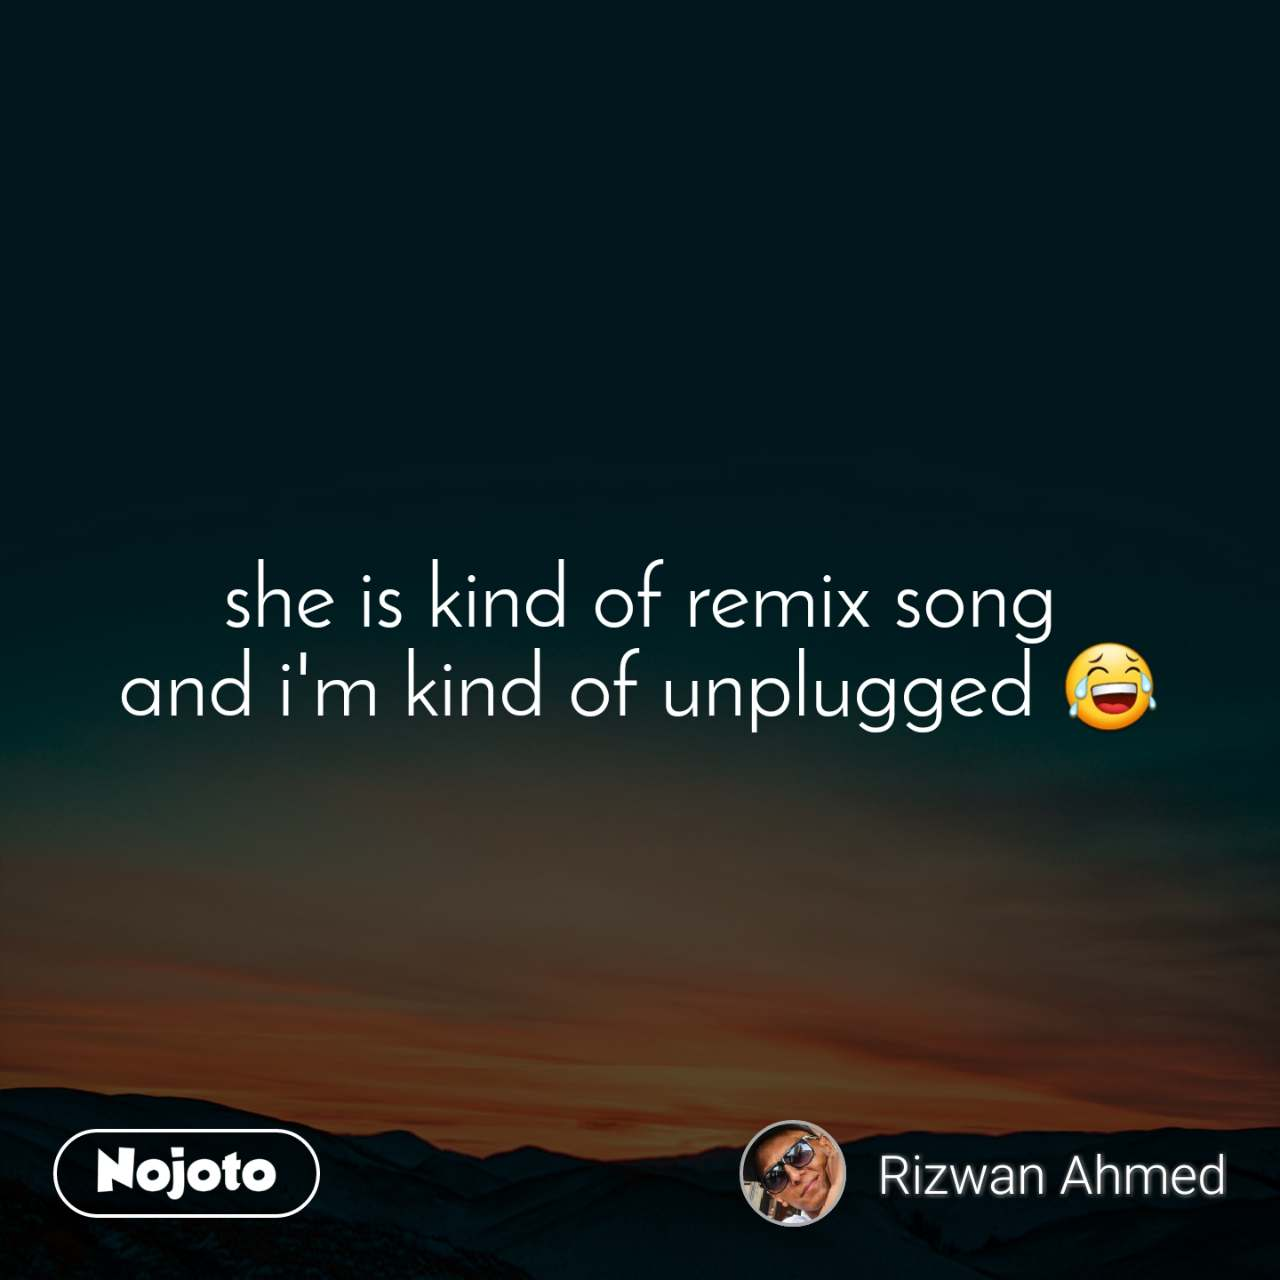 she is kind of remix song and i'm kind of unplugged 😂